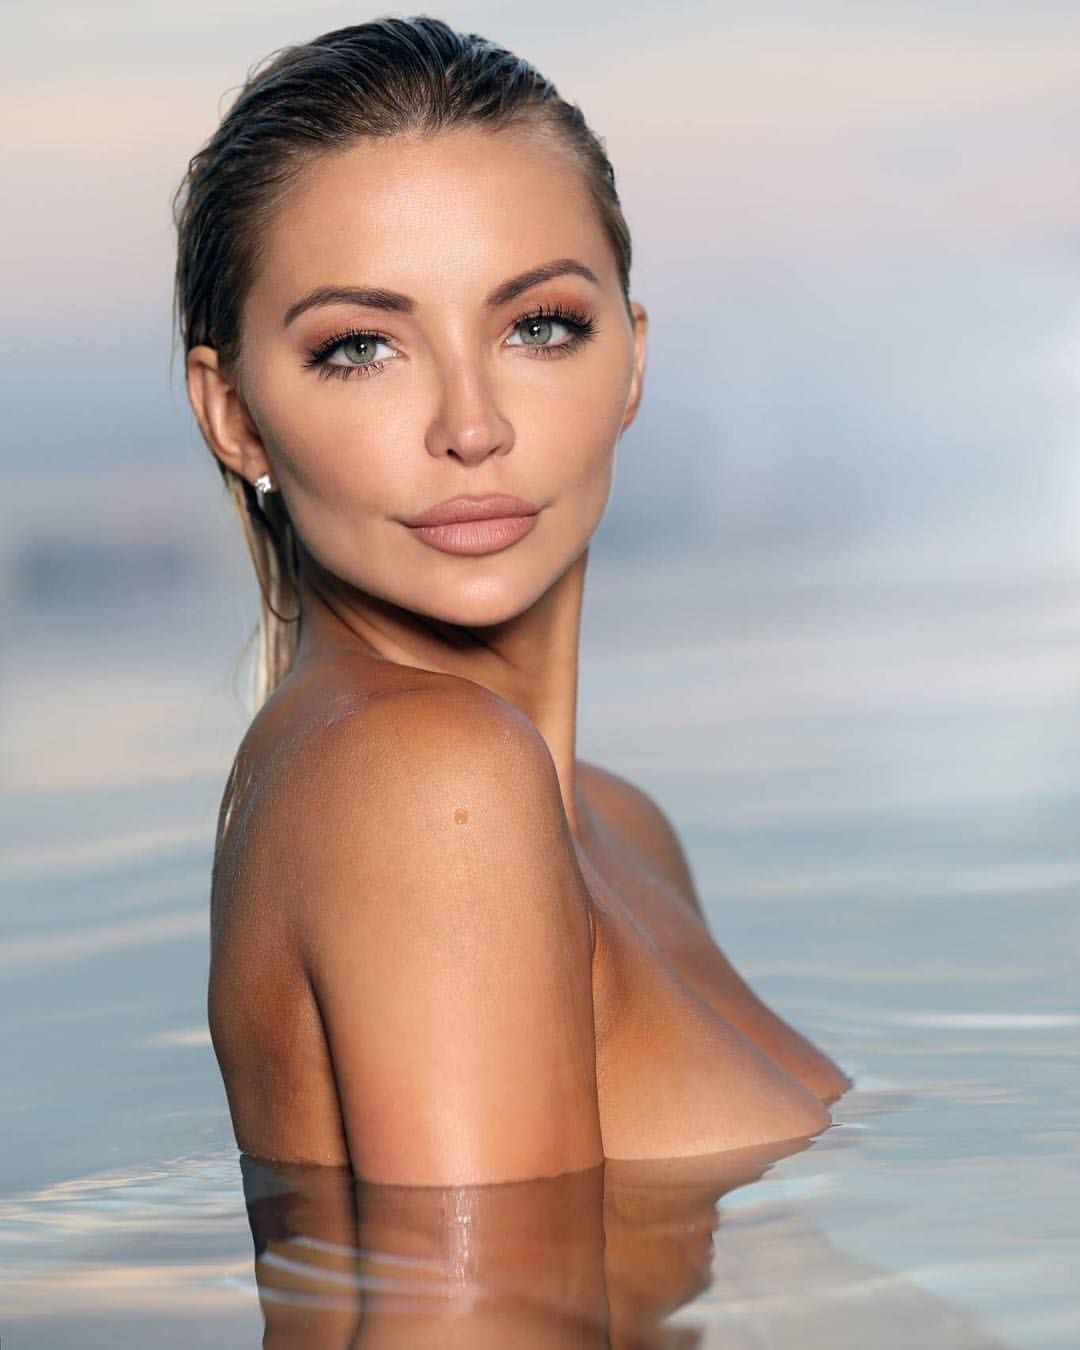 lindsey pelas | lindsey pelas | pinterest | girls, nice and beauty women